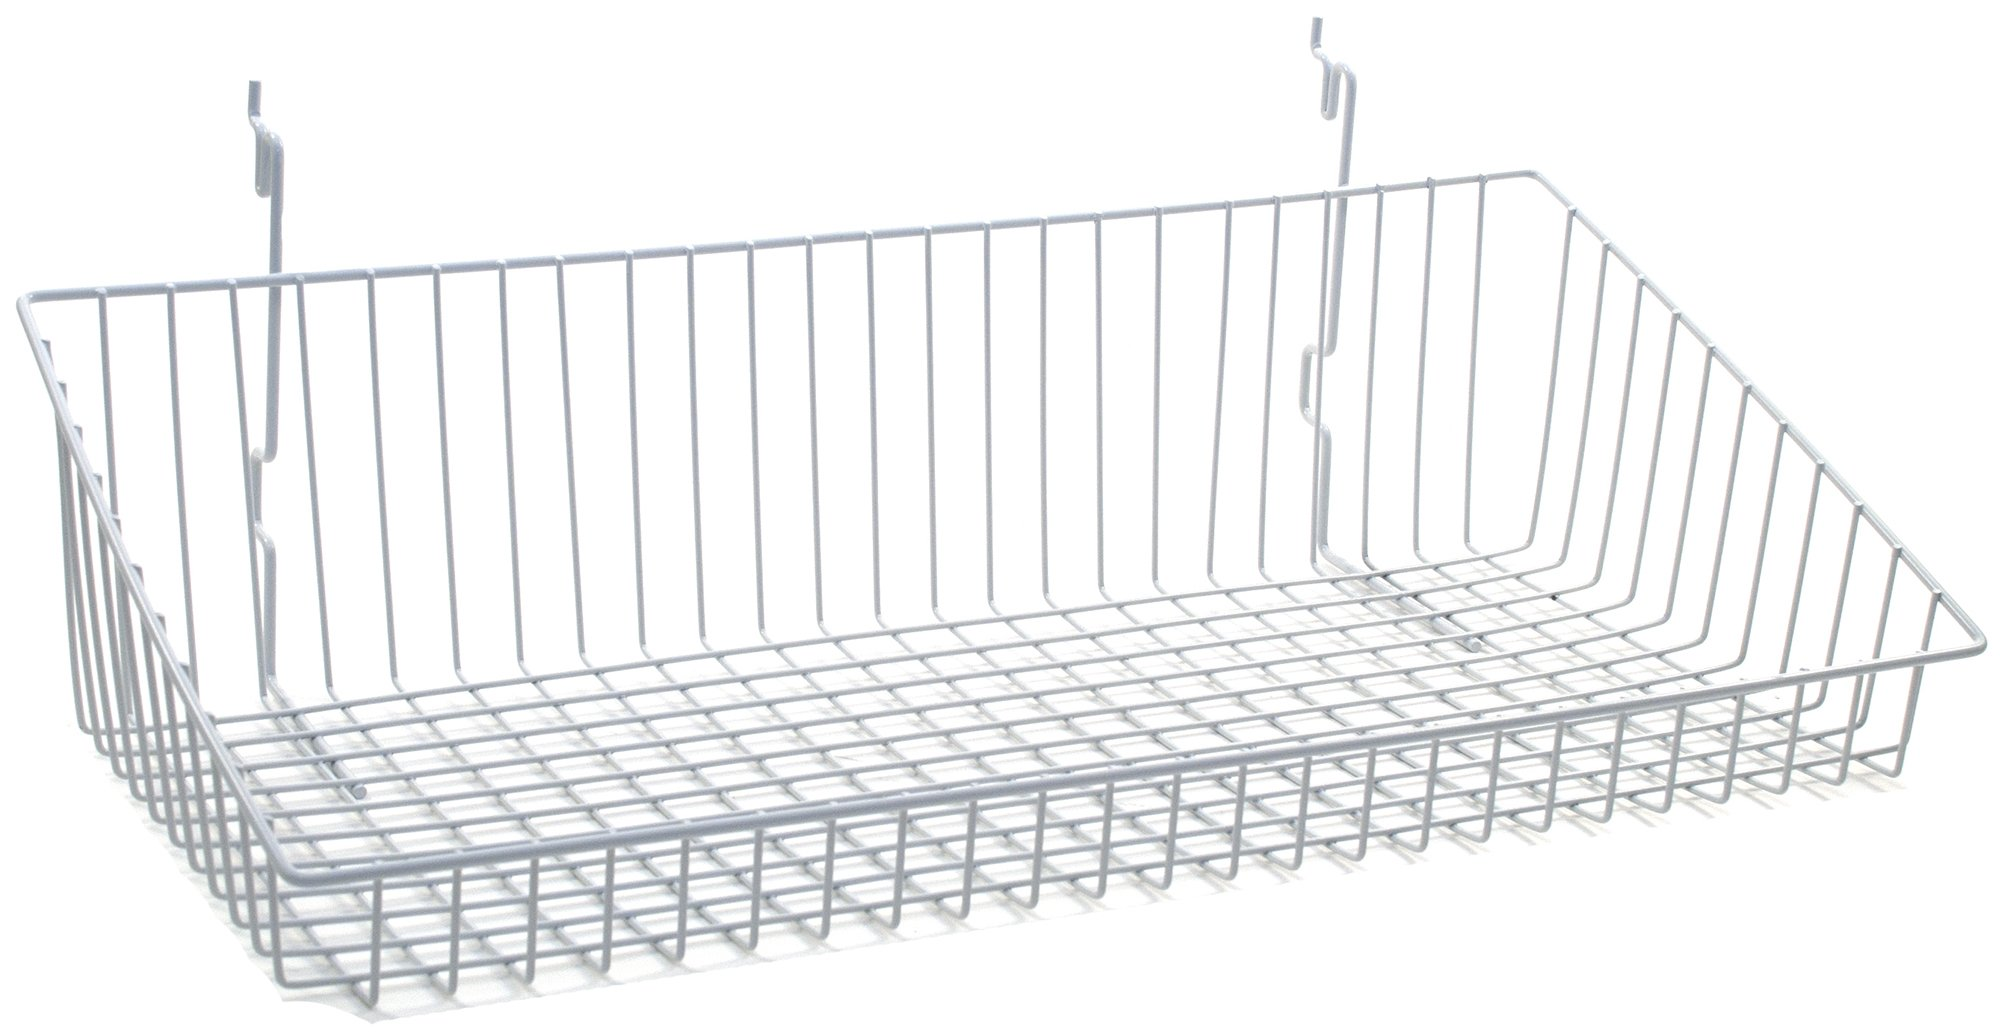 KC Store Fixtures A03035 Sloping Basket Fits Slatwall, Grid, Pegboard, 24'' W x 12'' D x 6'' H Back x 2'' H Front, White (Pack of 6)